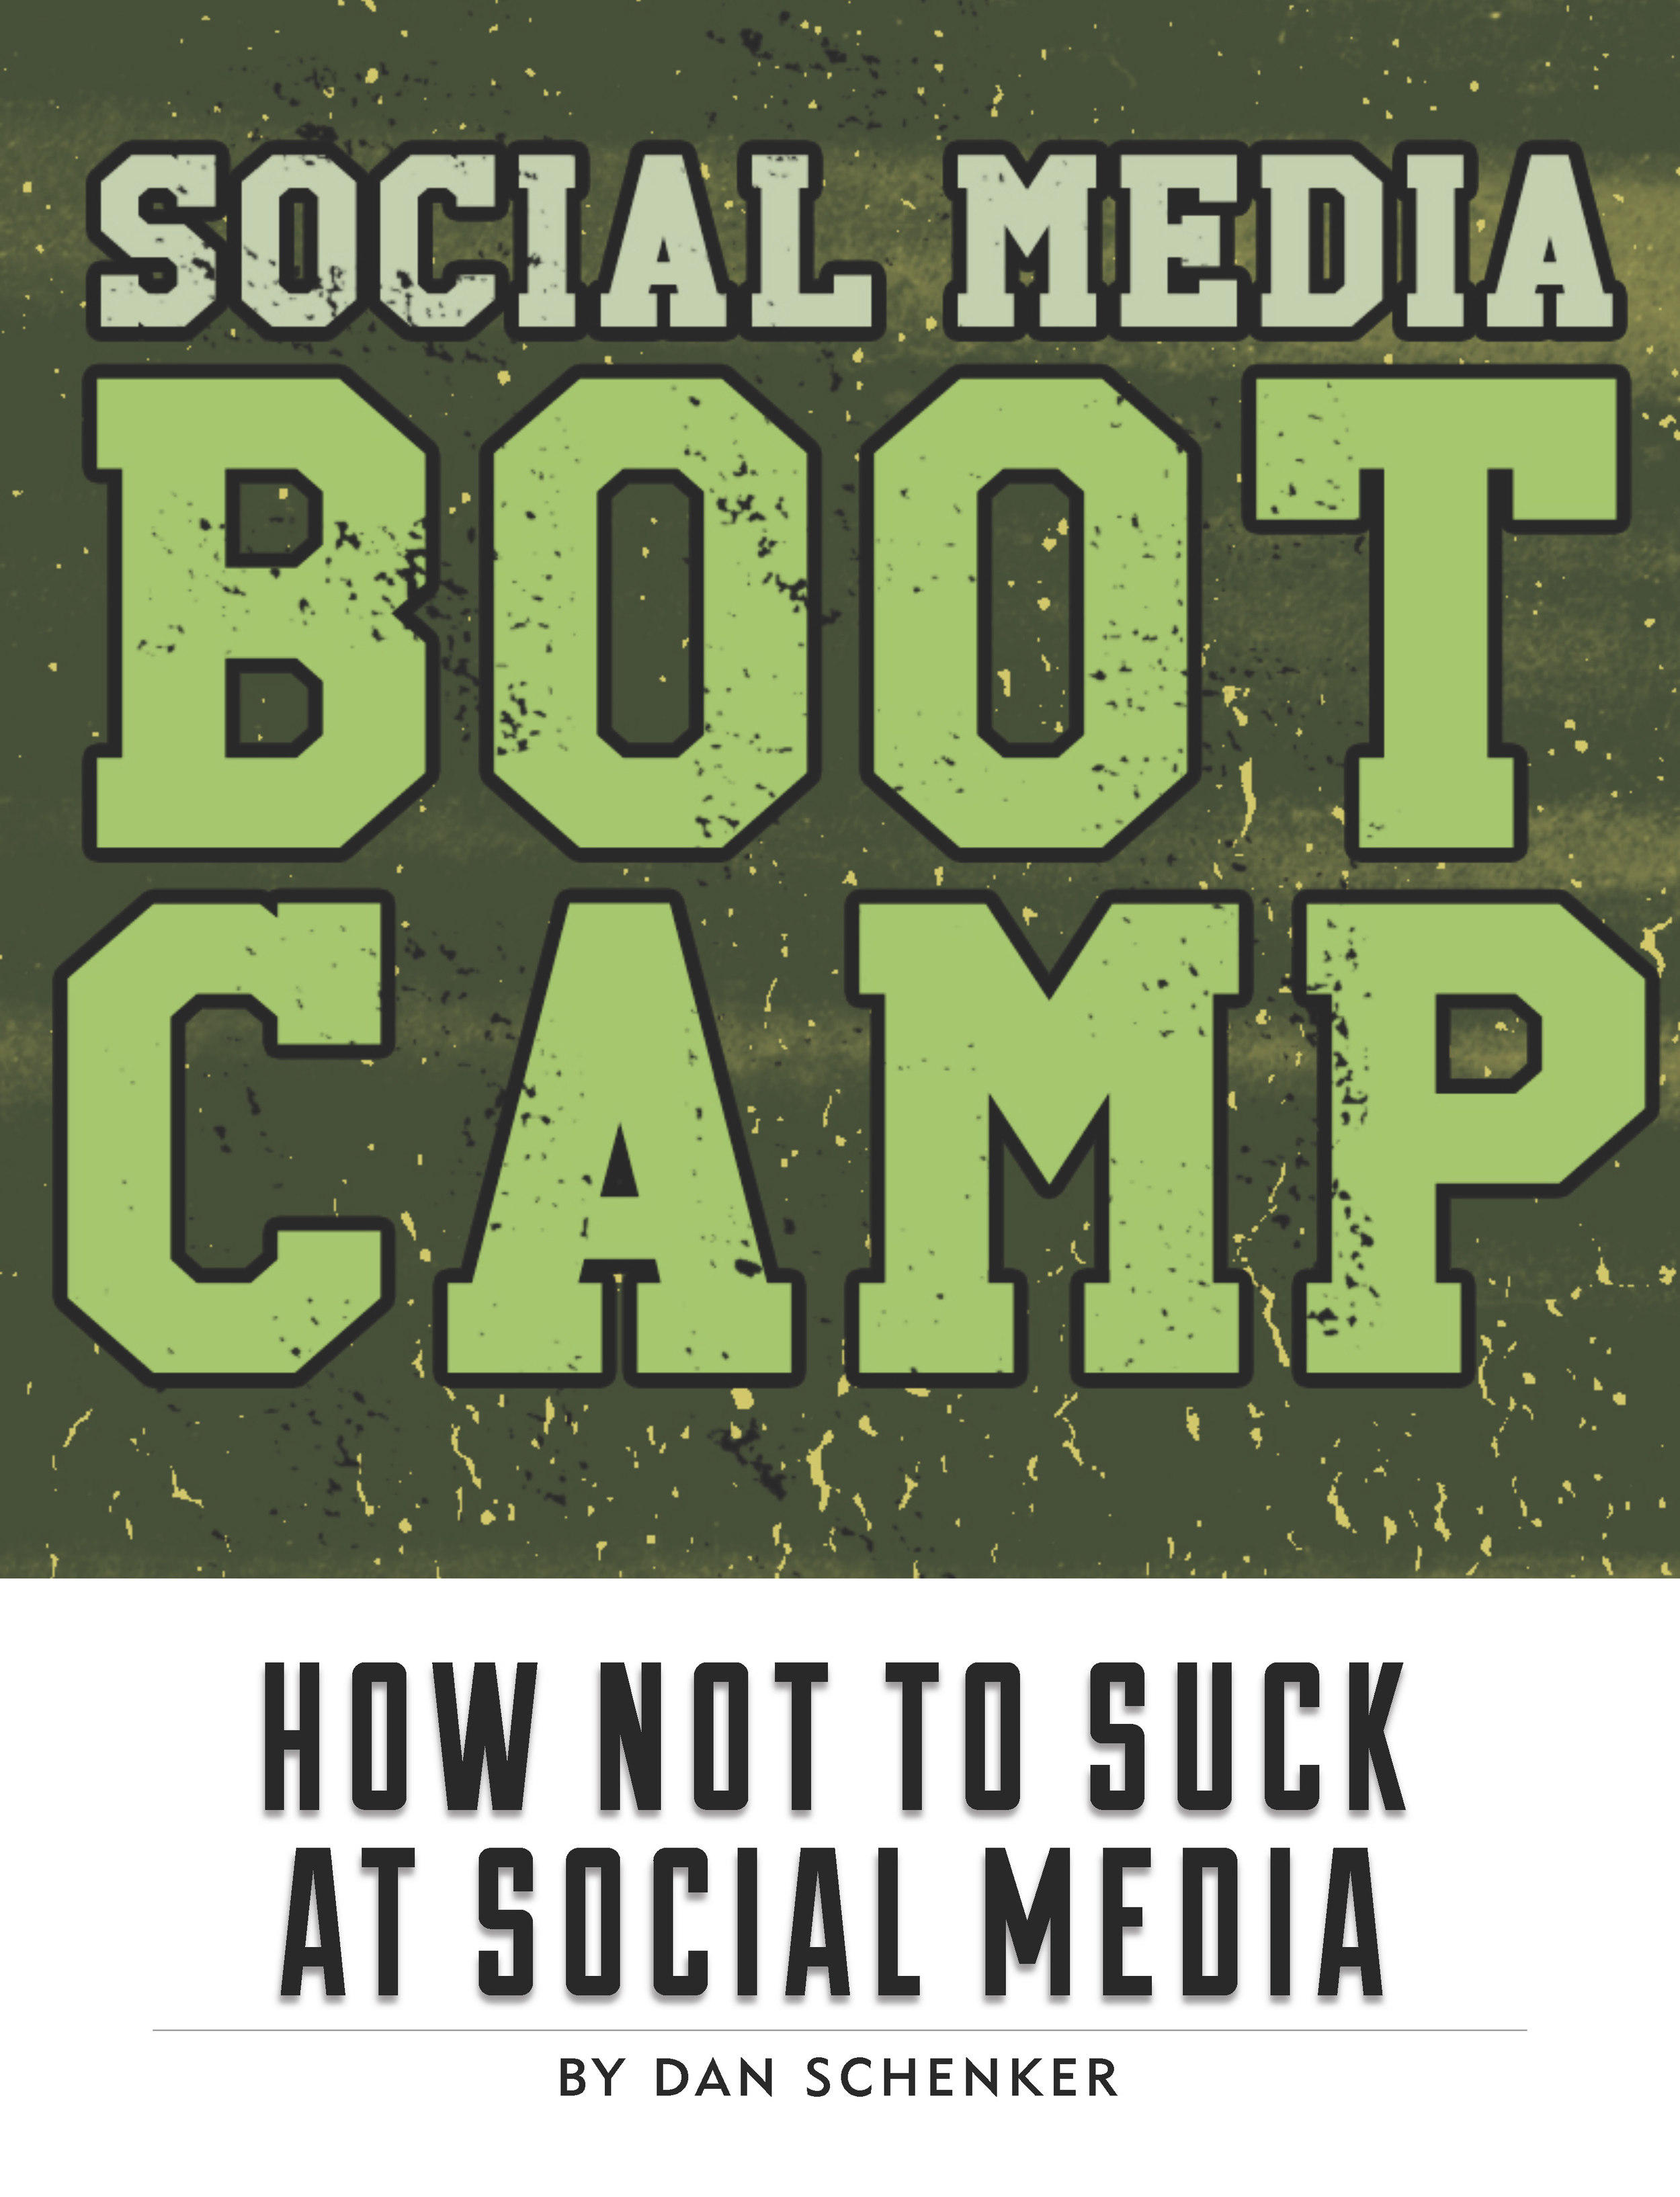 Social Media Boot Camp: How Not To Suck At Social Media by Dan Schenker